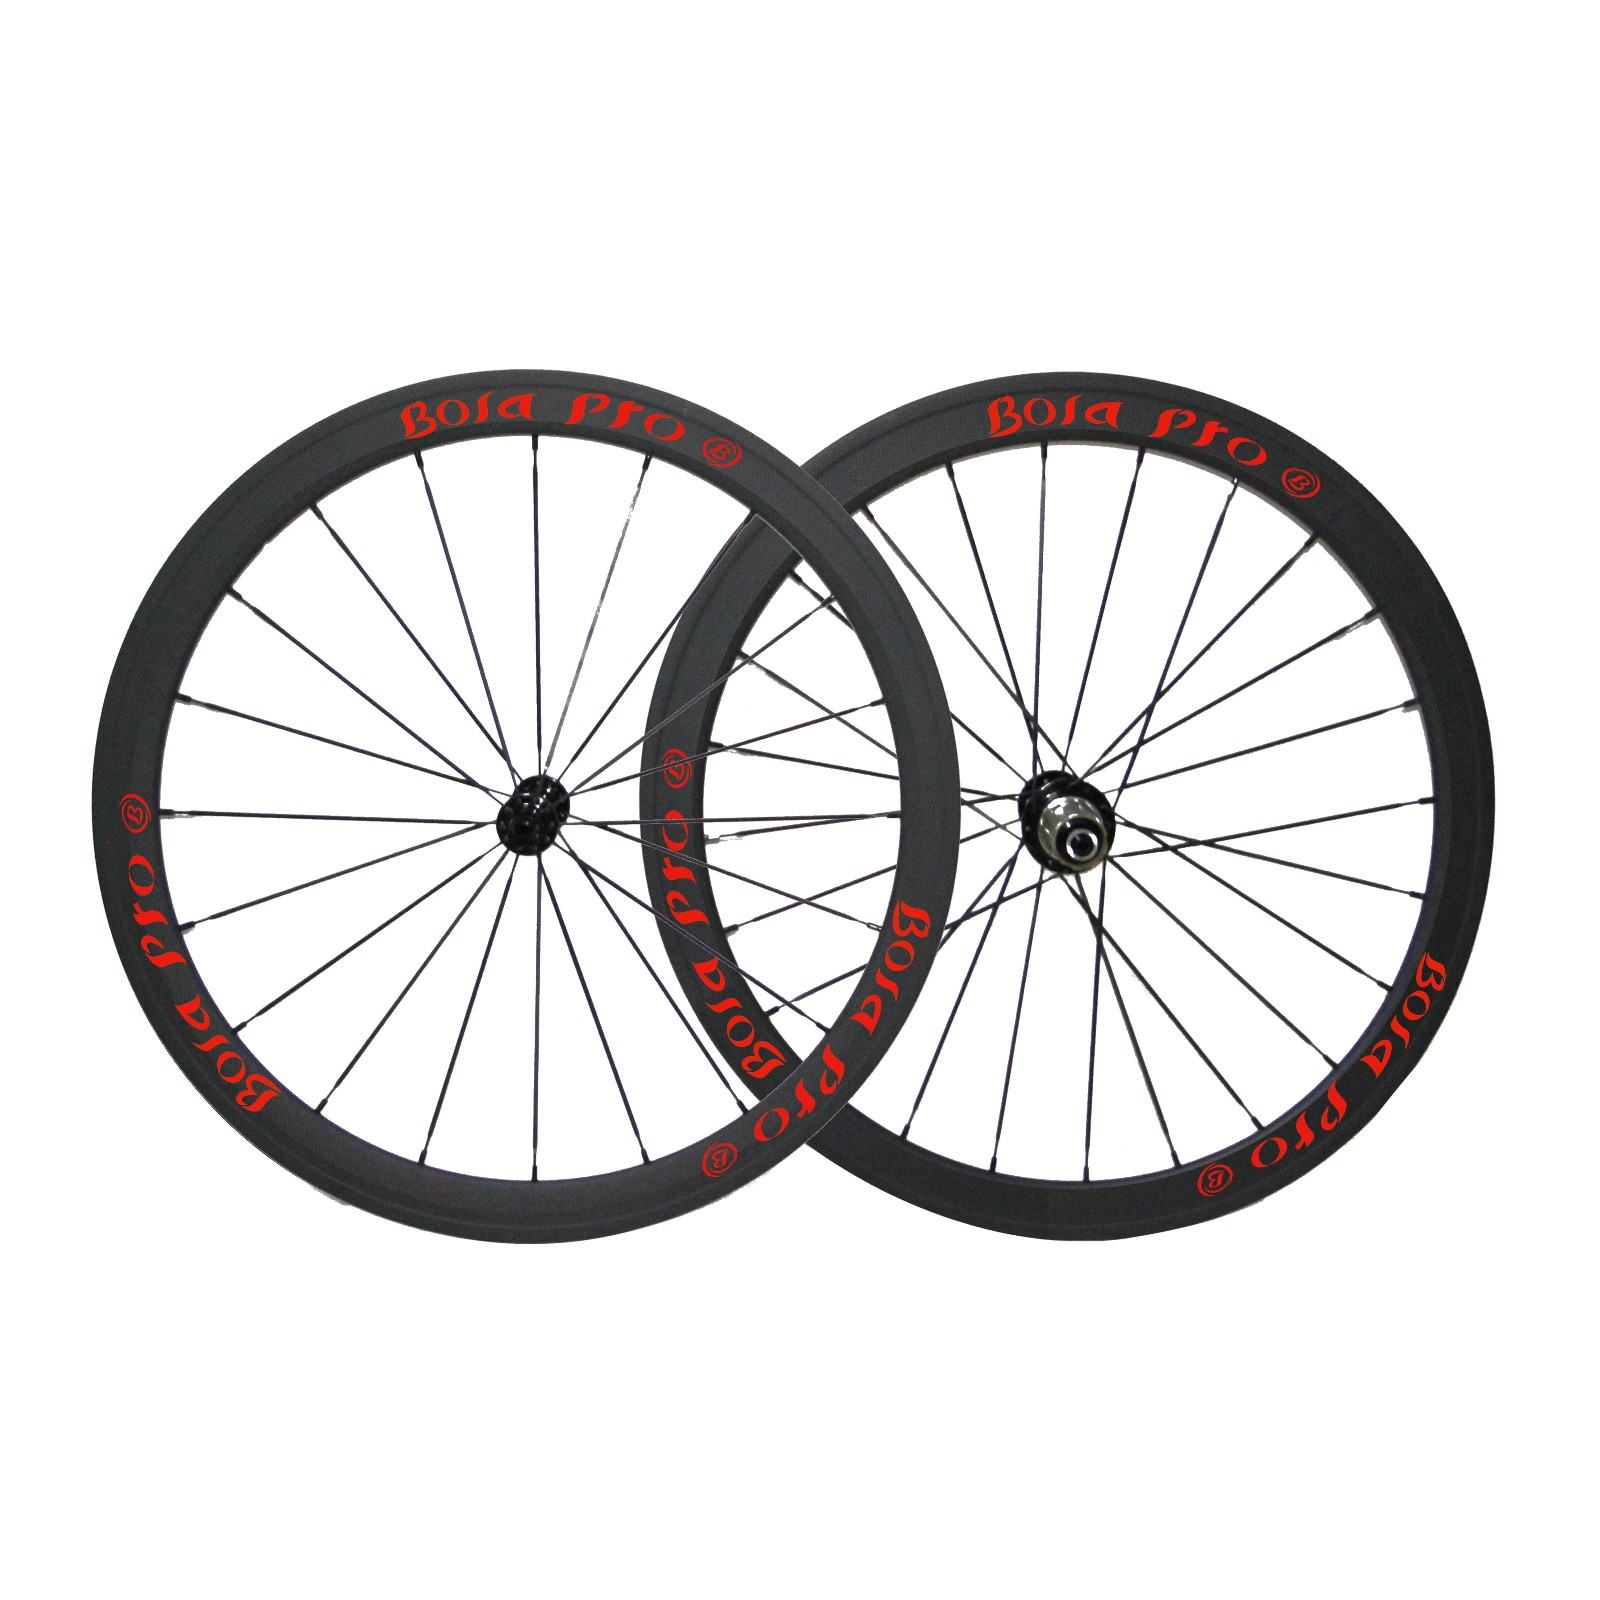 700C 38mm carbon wheelset with ceramic bearing hub